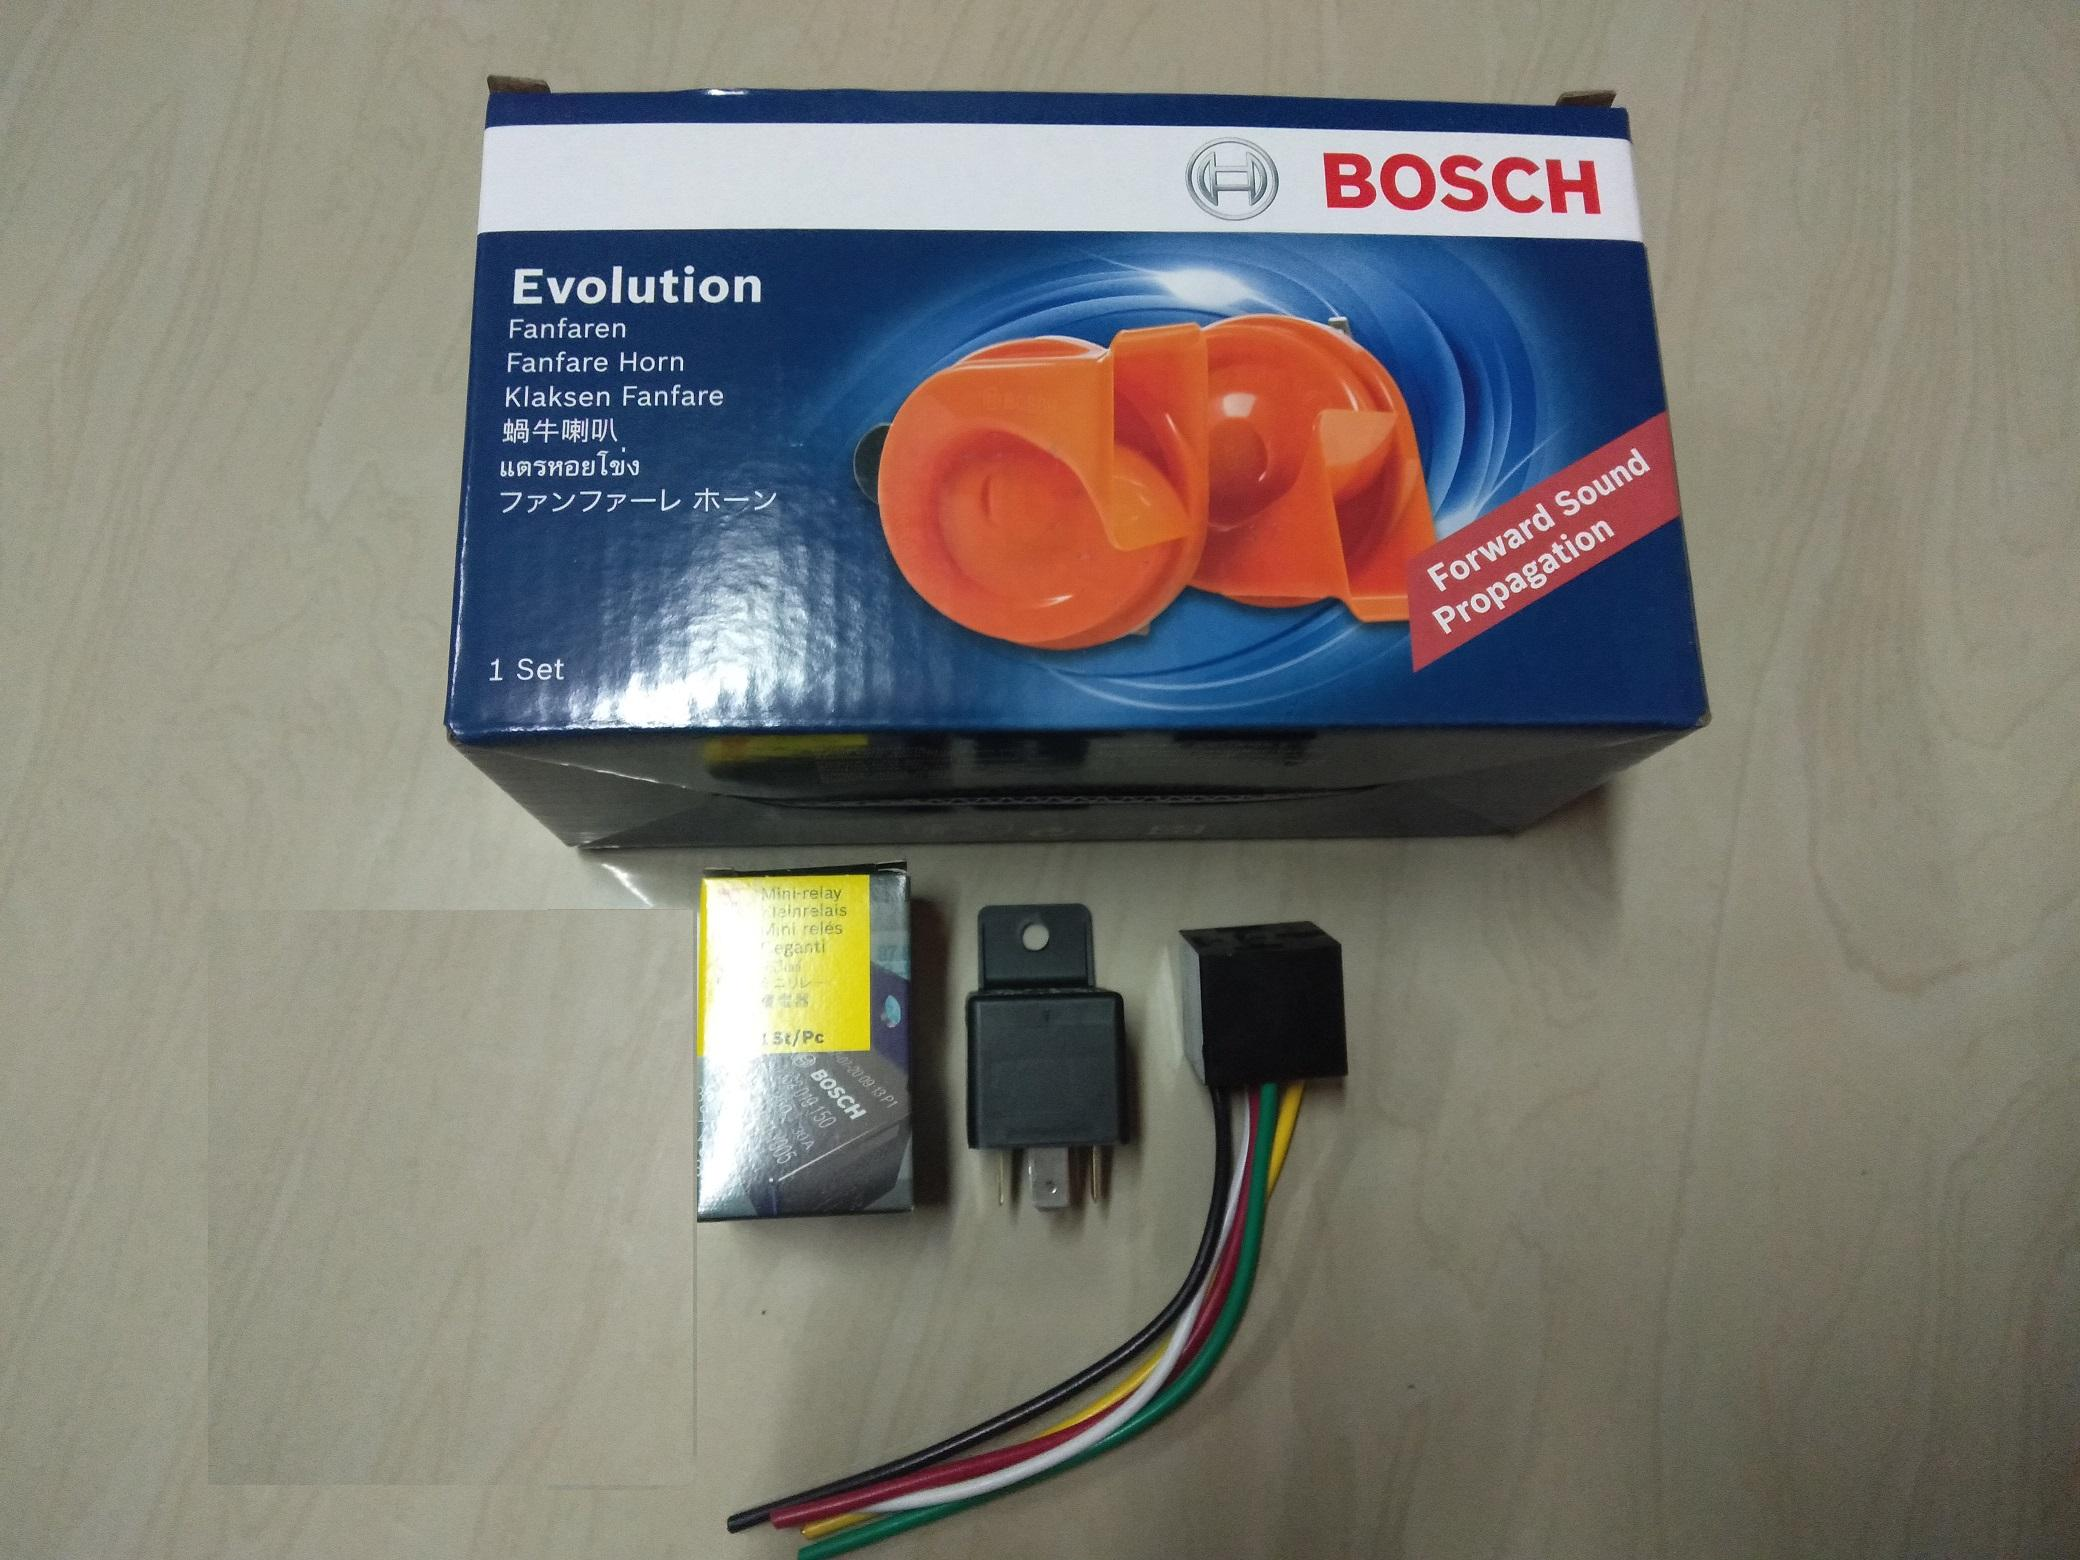 evolution bosch fanfare horn 12 volts with free bosch relay and socket